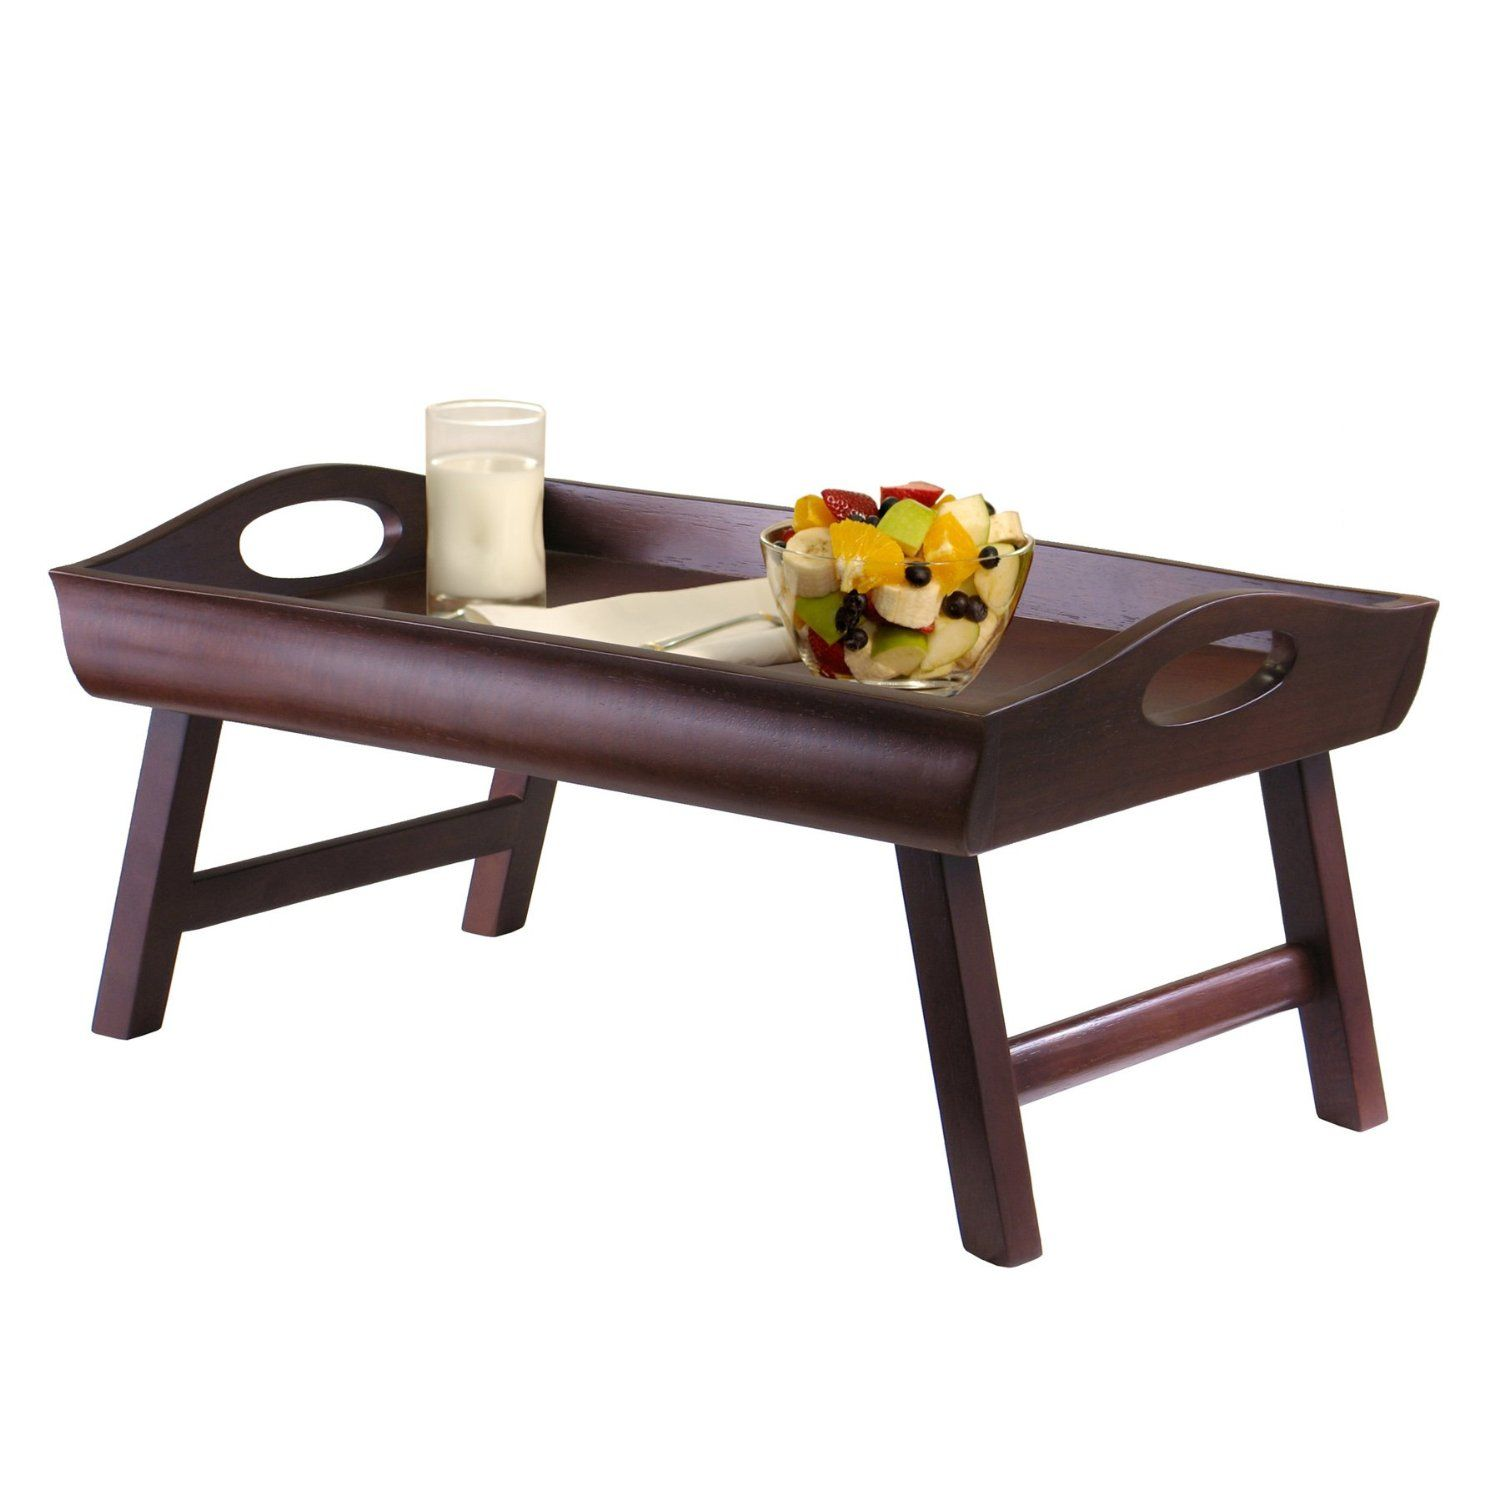 Winsome Wood Sedona Bed Tray Curved Side, Foldable Legs, Large Handle: Housewarming  Gift